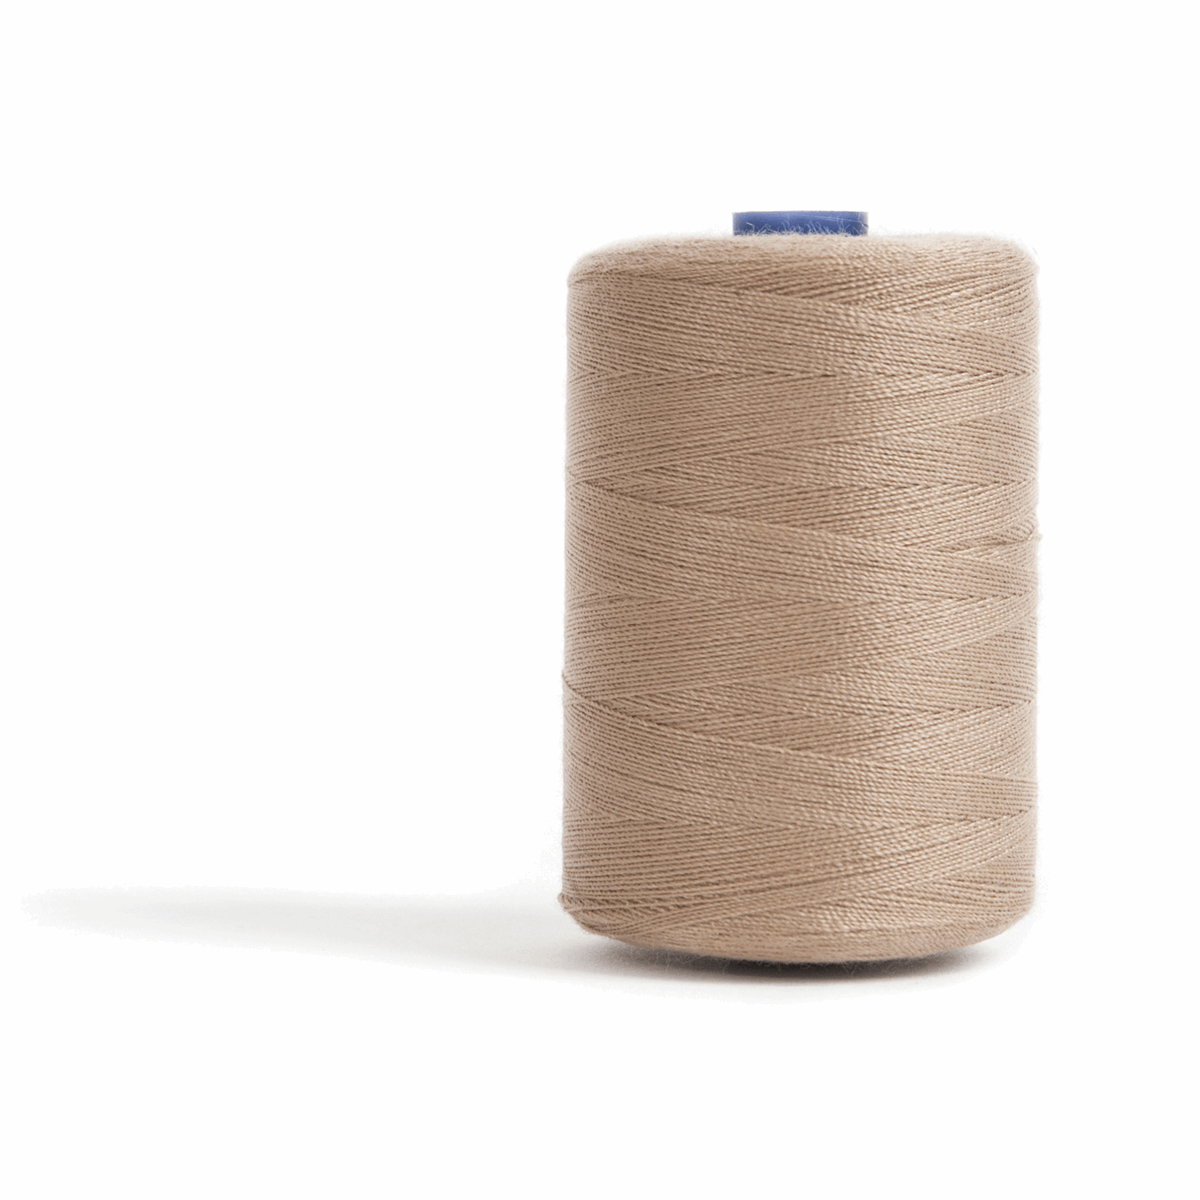 Thread 1000m Extra Large - Fawn - for Sewing and Overlocking